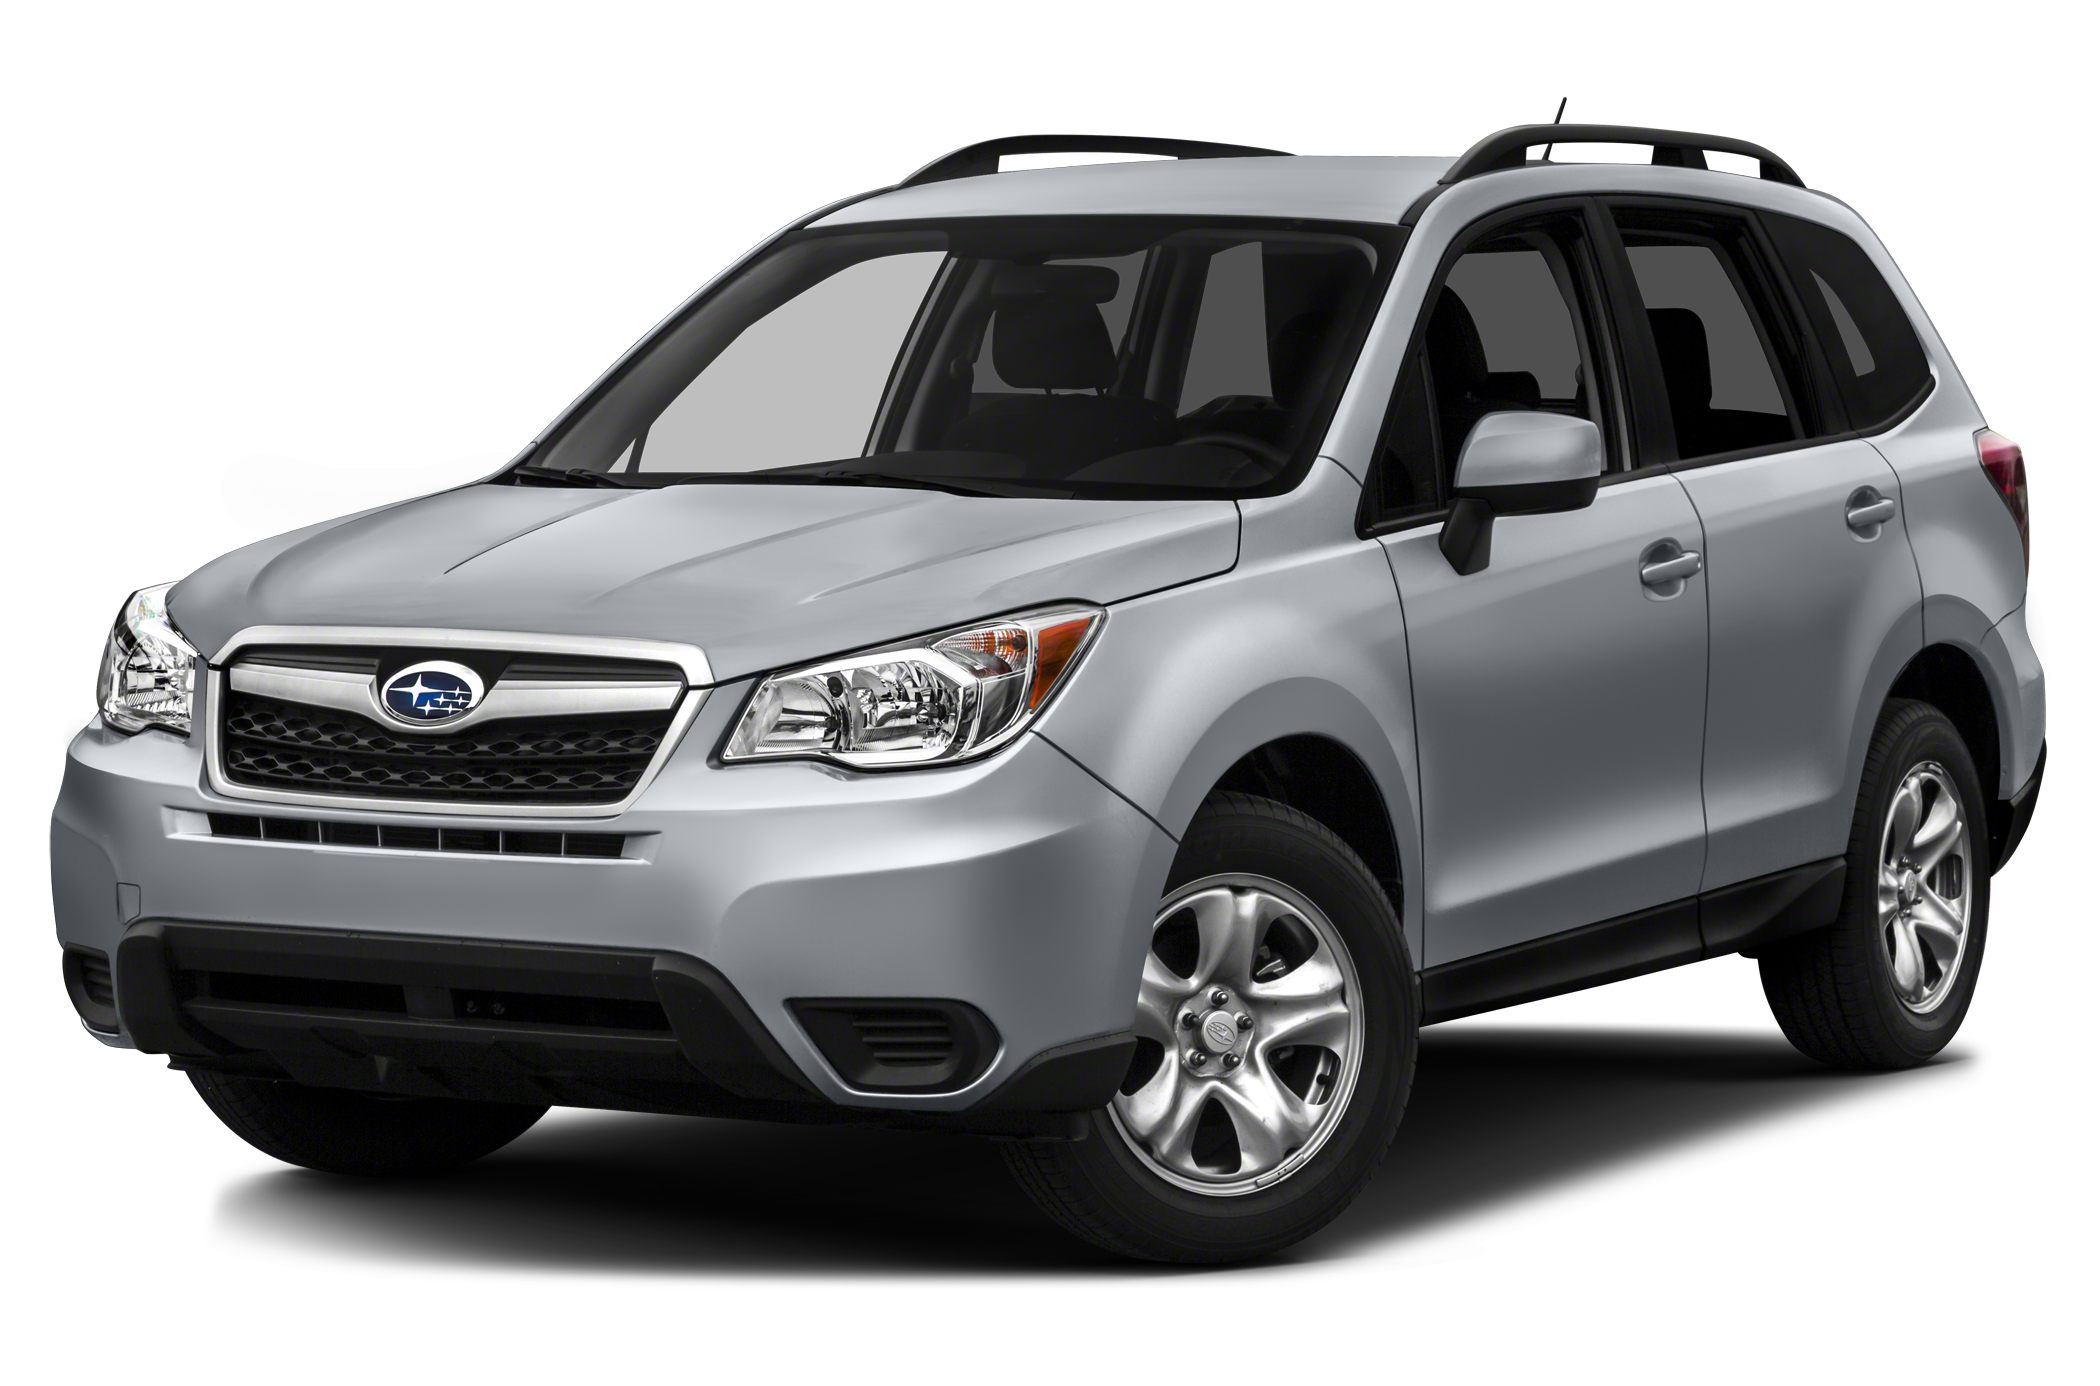 2016 Forester Owner Reviews 1